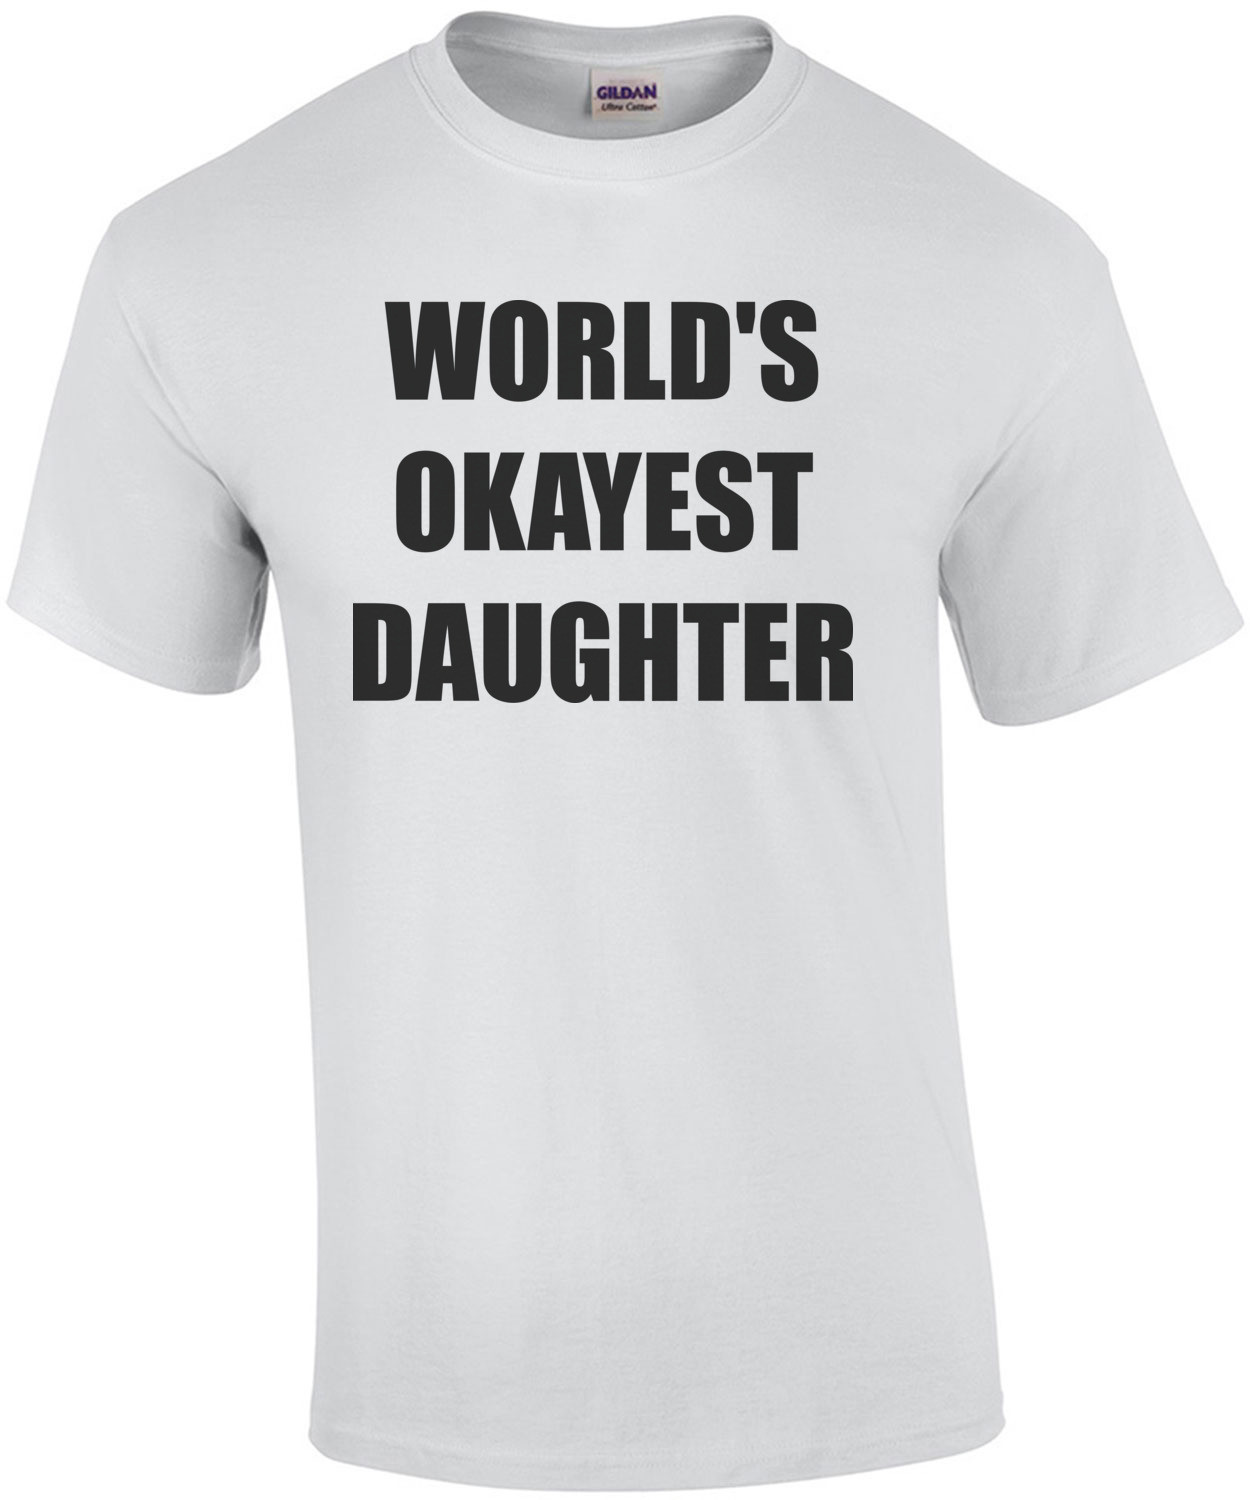 WORLD'S OKAYEST DAUGHTER Shirt